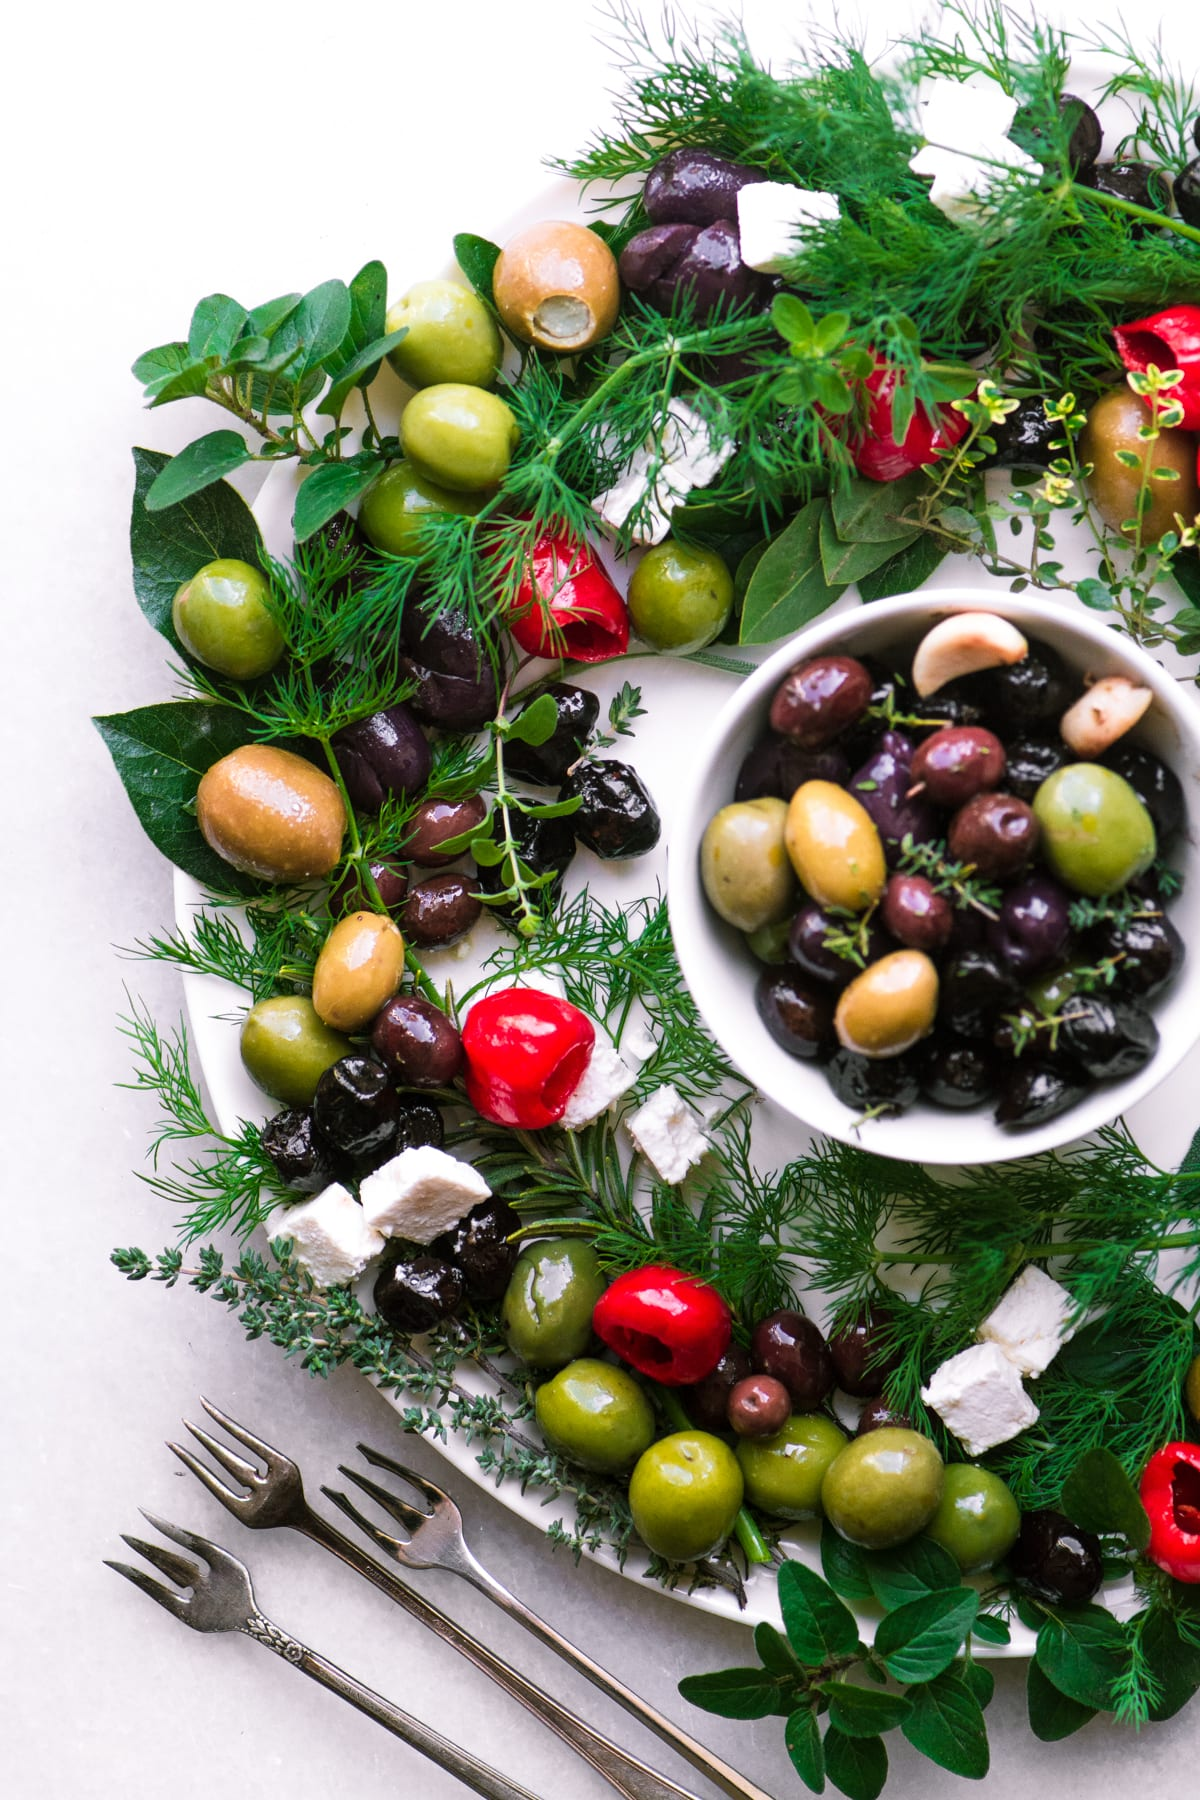 Festive olive and herb wreath appetizer with forks